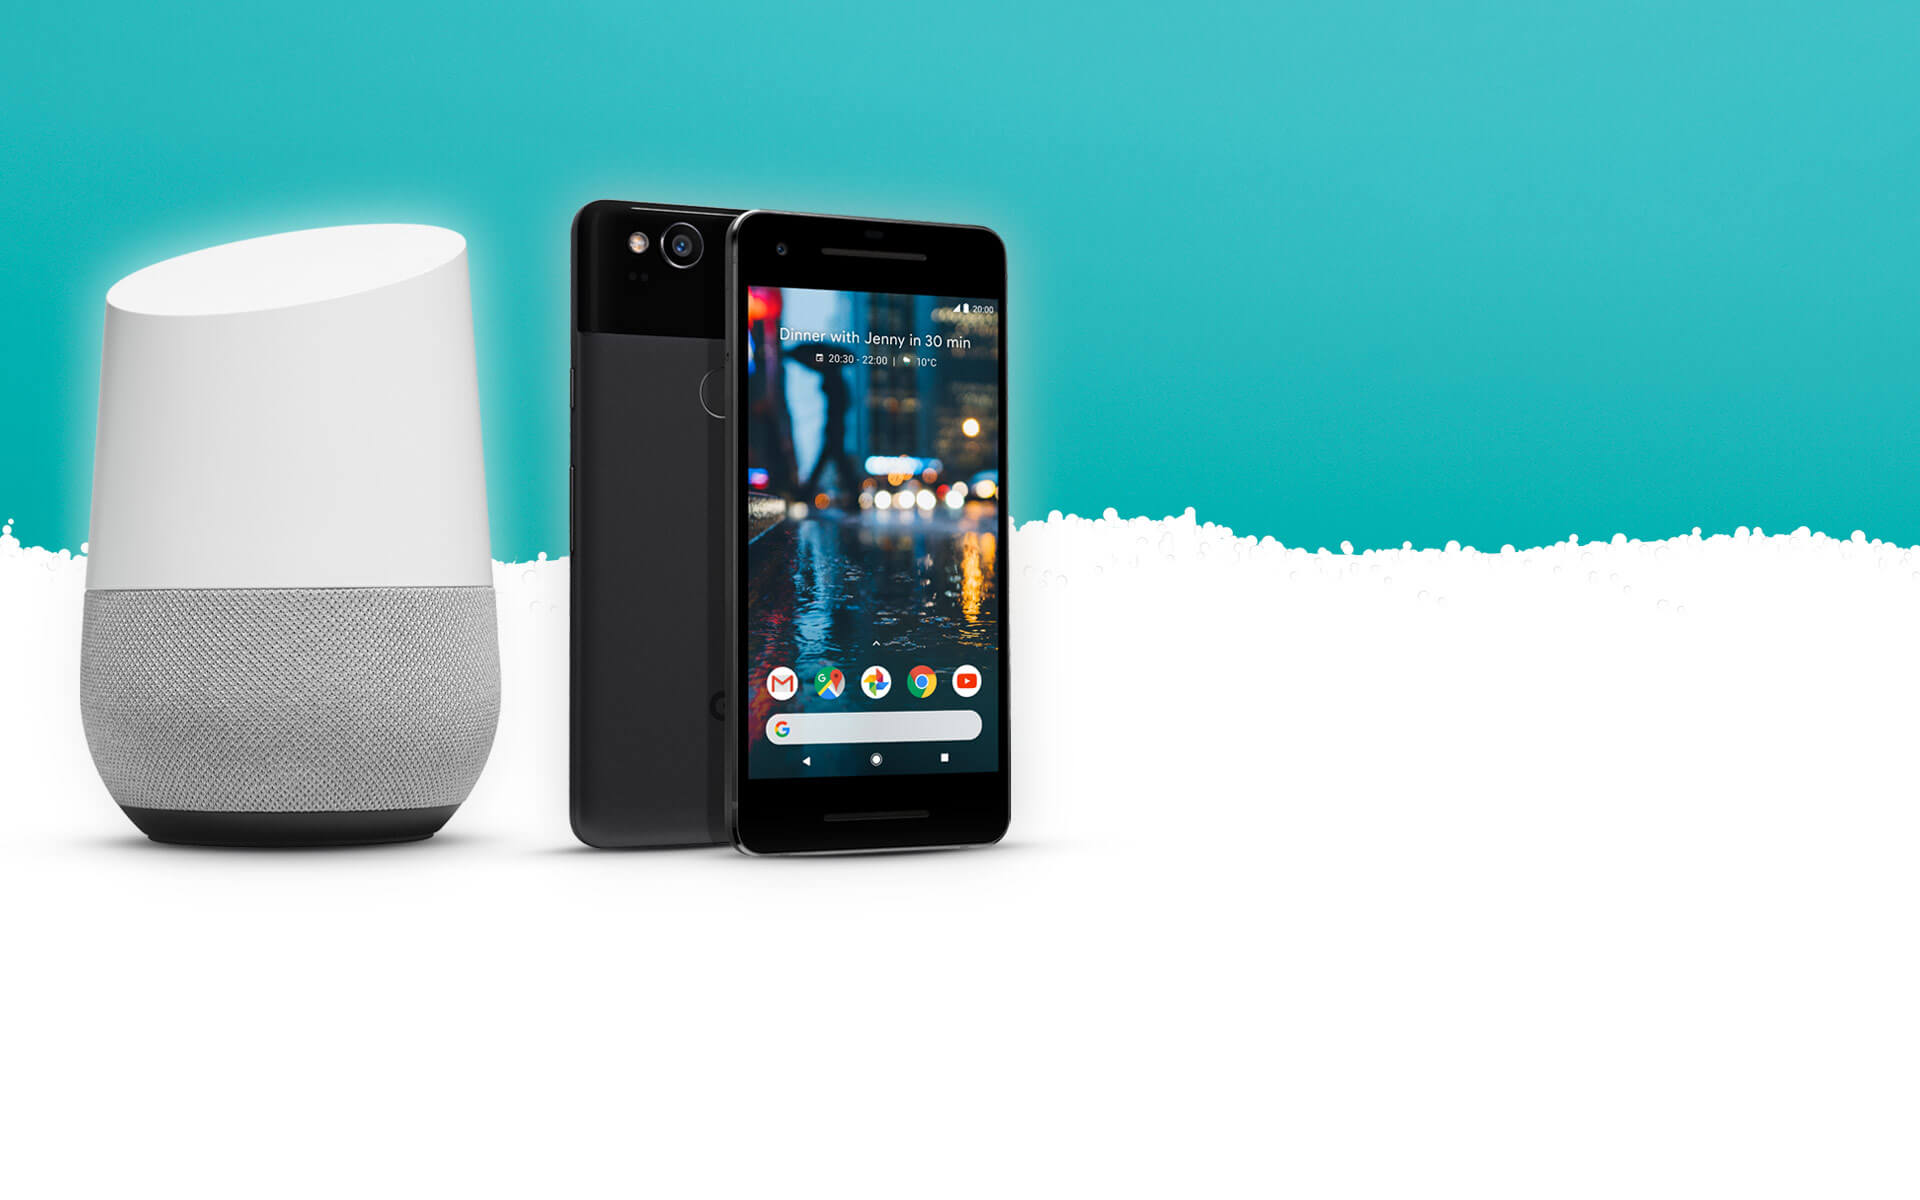 Buy the Google Pixel 2 and get a free Google Home